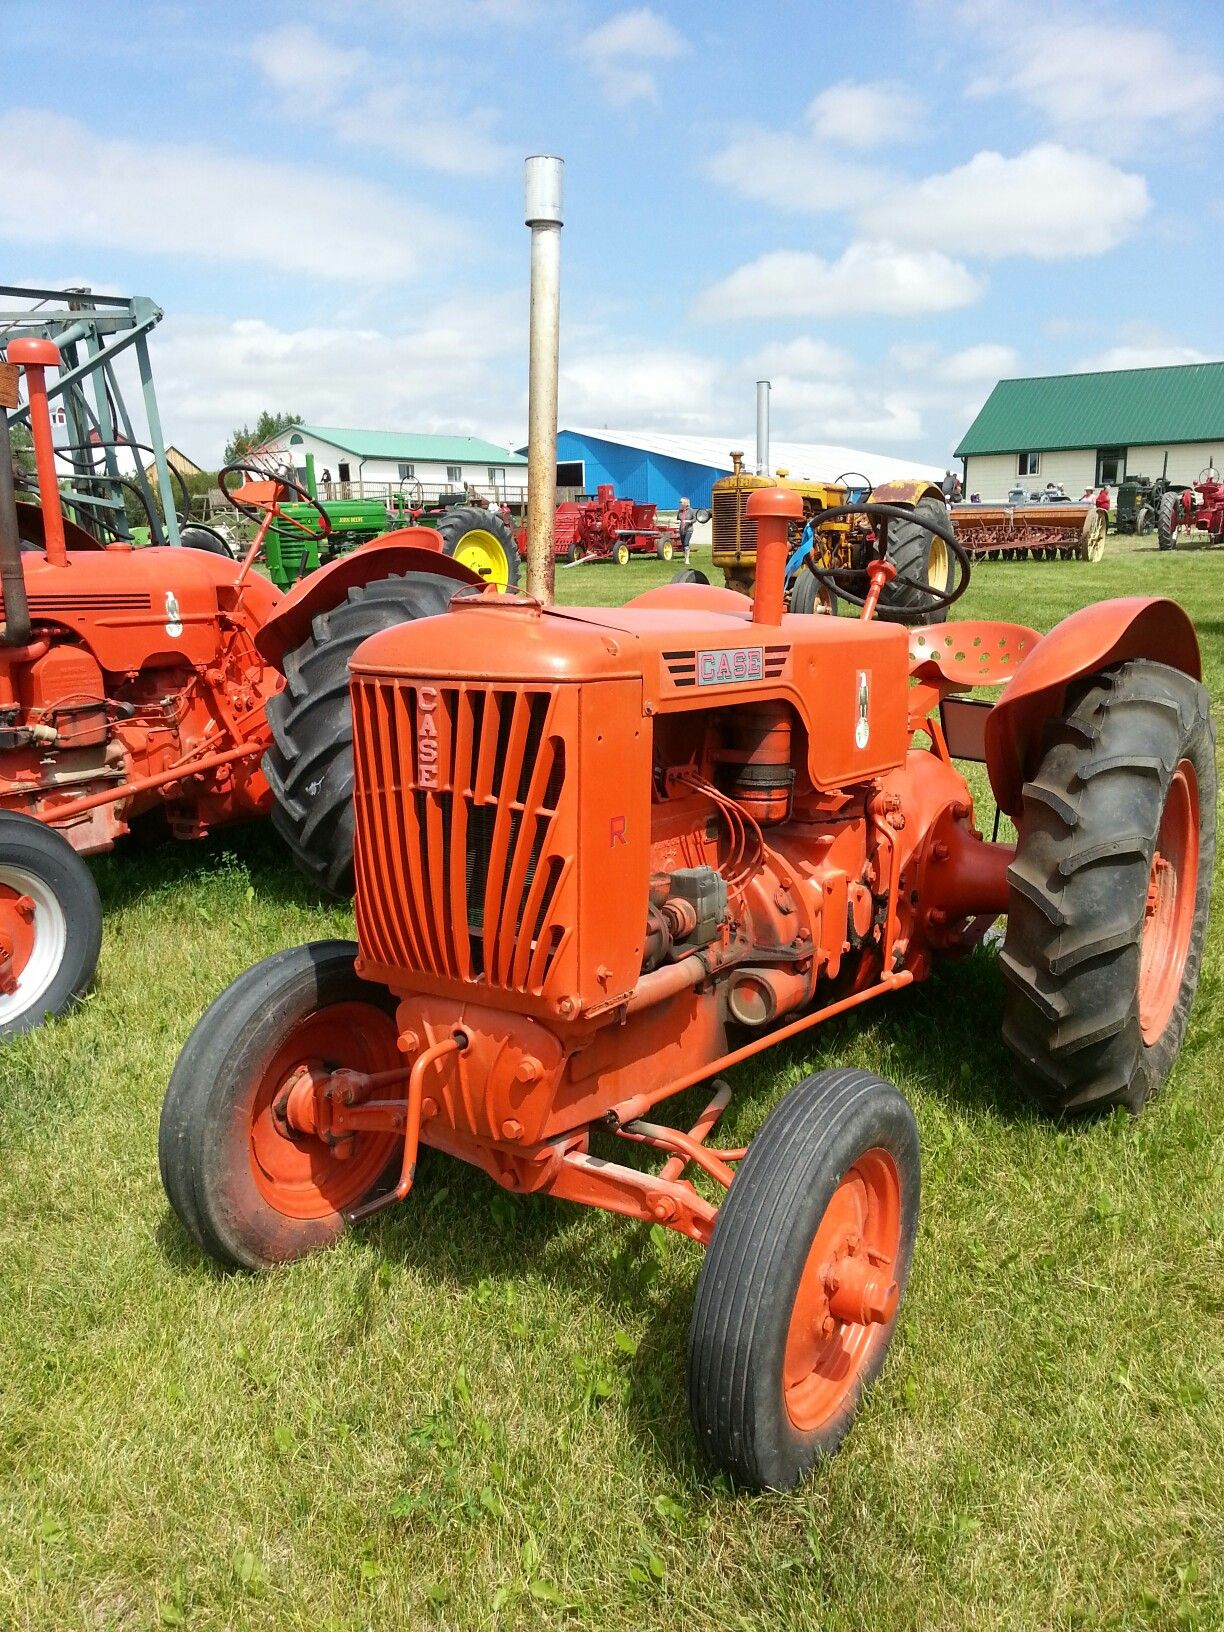 Old Farm Tractors For Sale : tractors, Model, Tractors,, Antique, Tractors